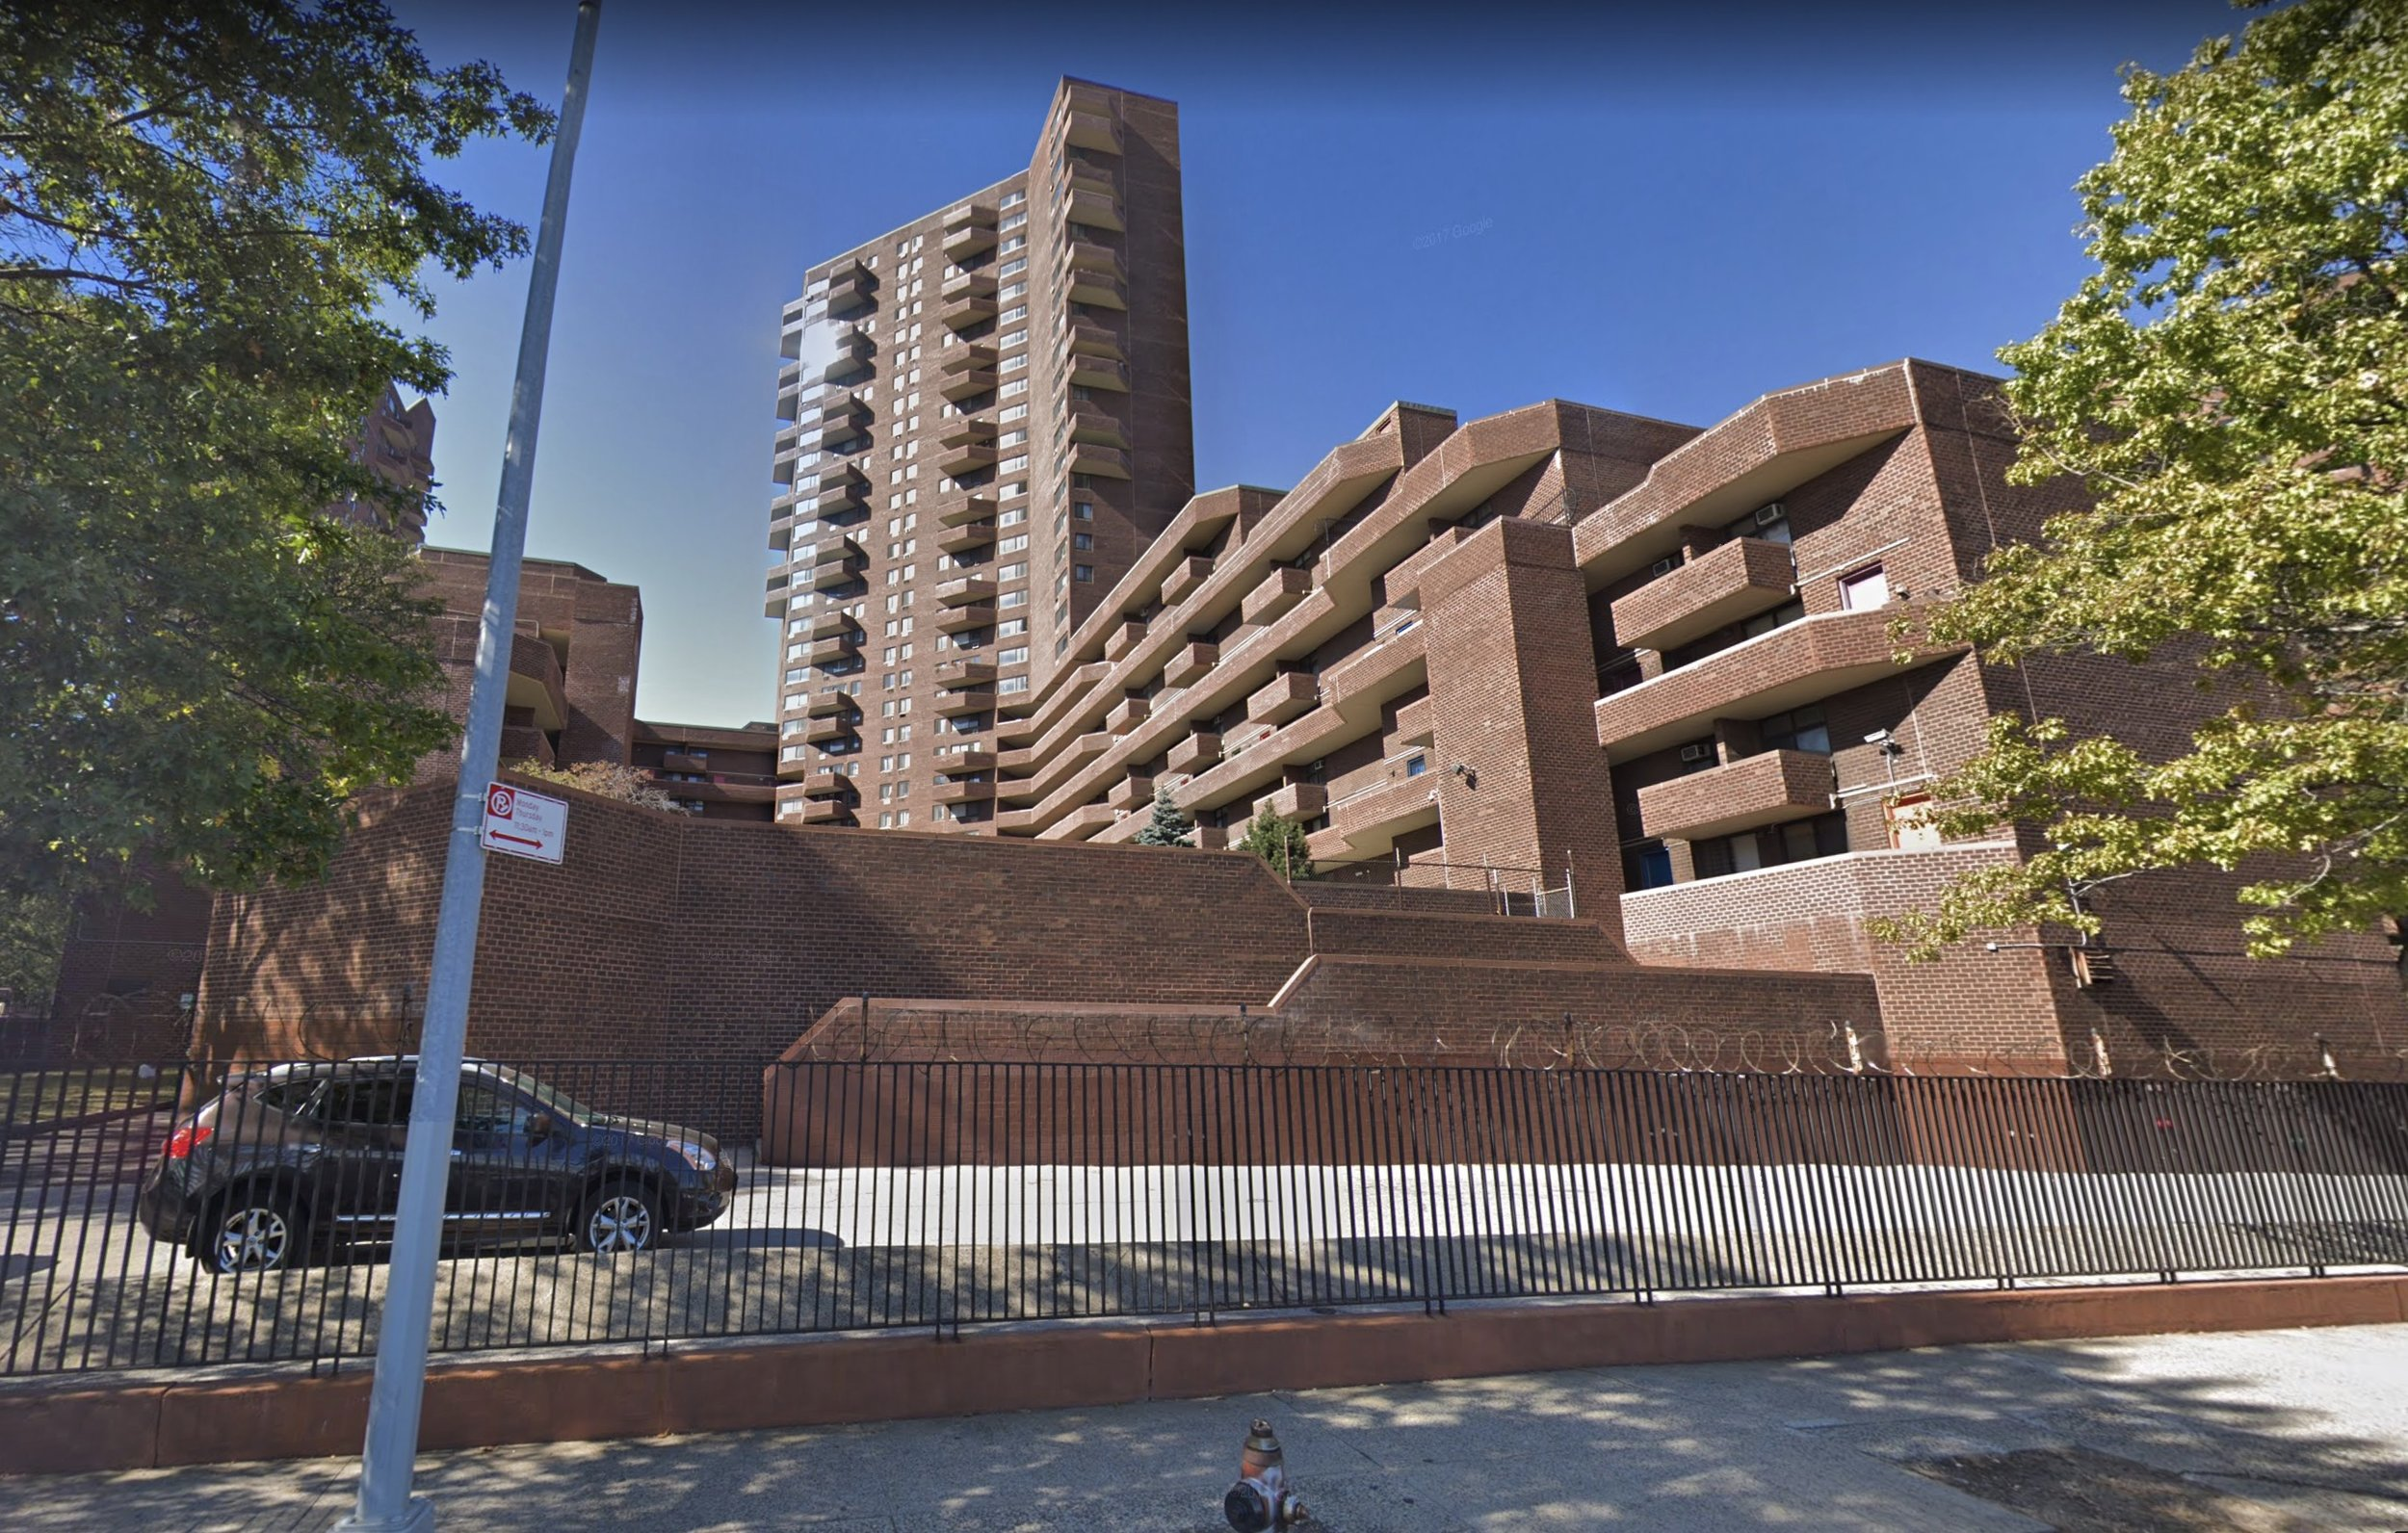 1199 Plaza from FDR Drive, showing elevated plaza